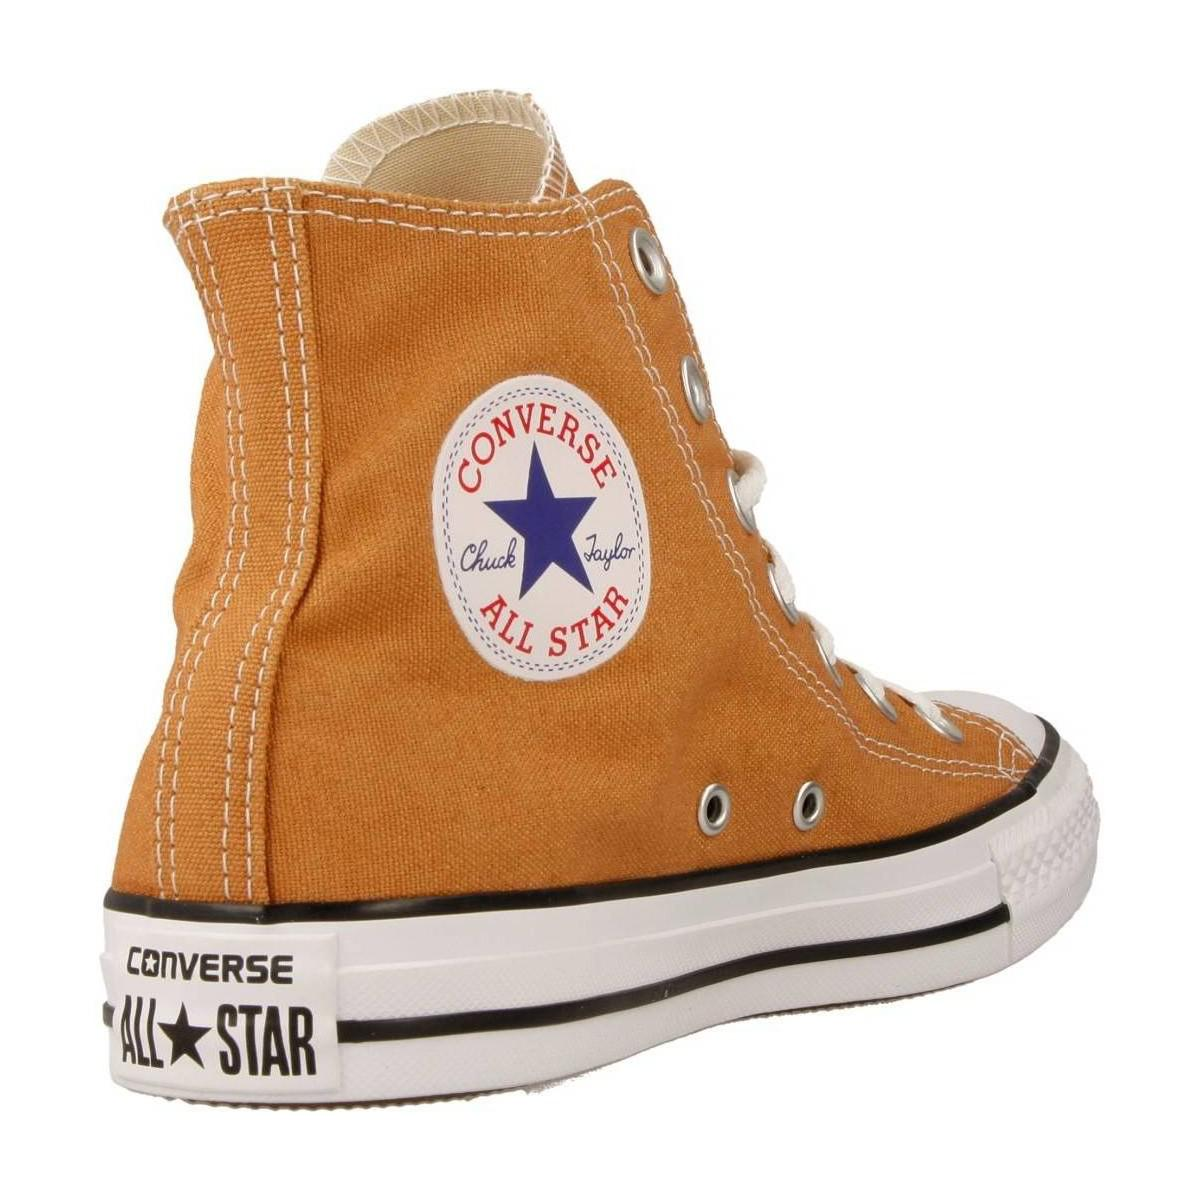 Converse Ctas Hi Raw Sugar Women's Shoes (high-top Trainers) In Brown